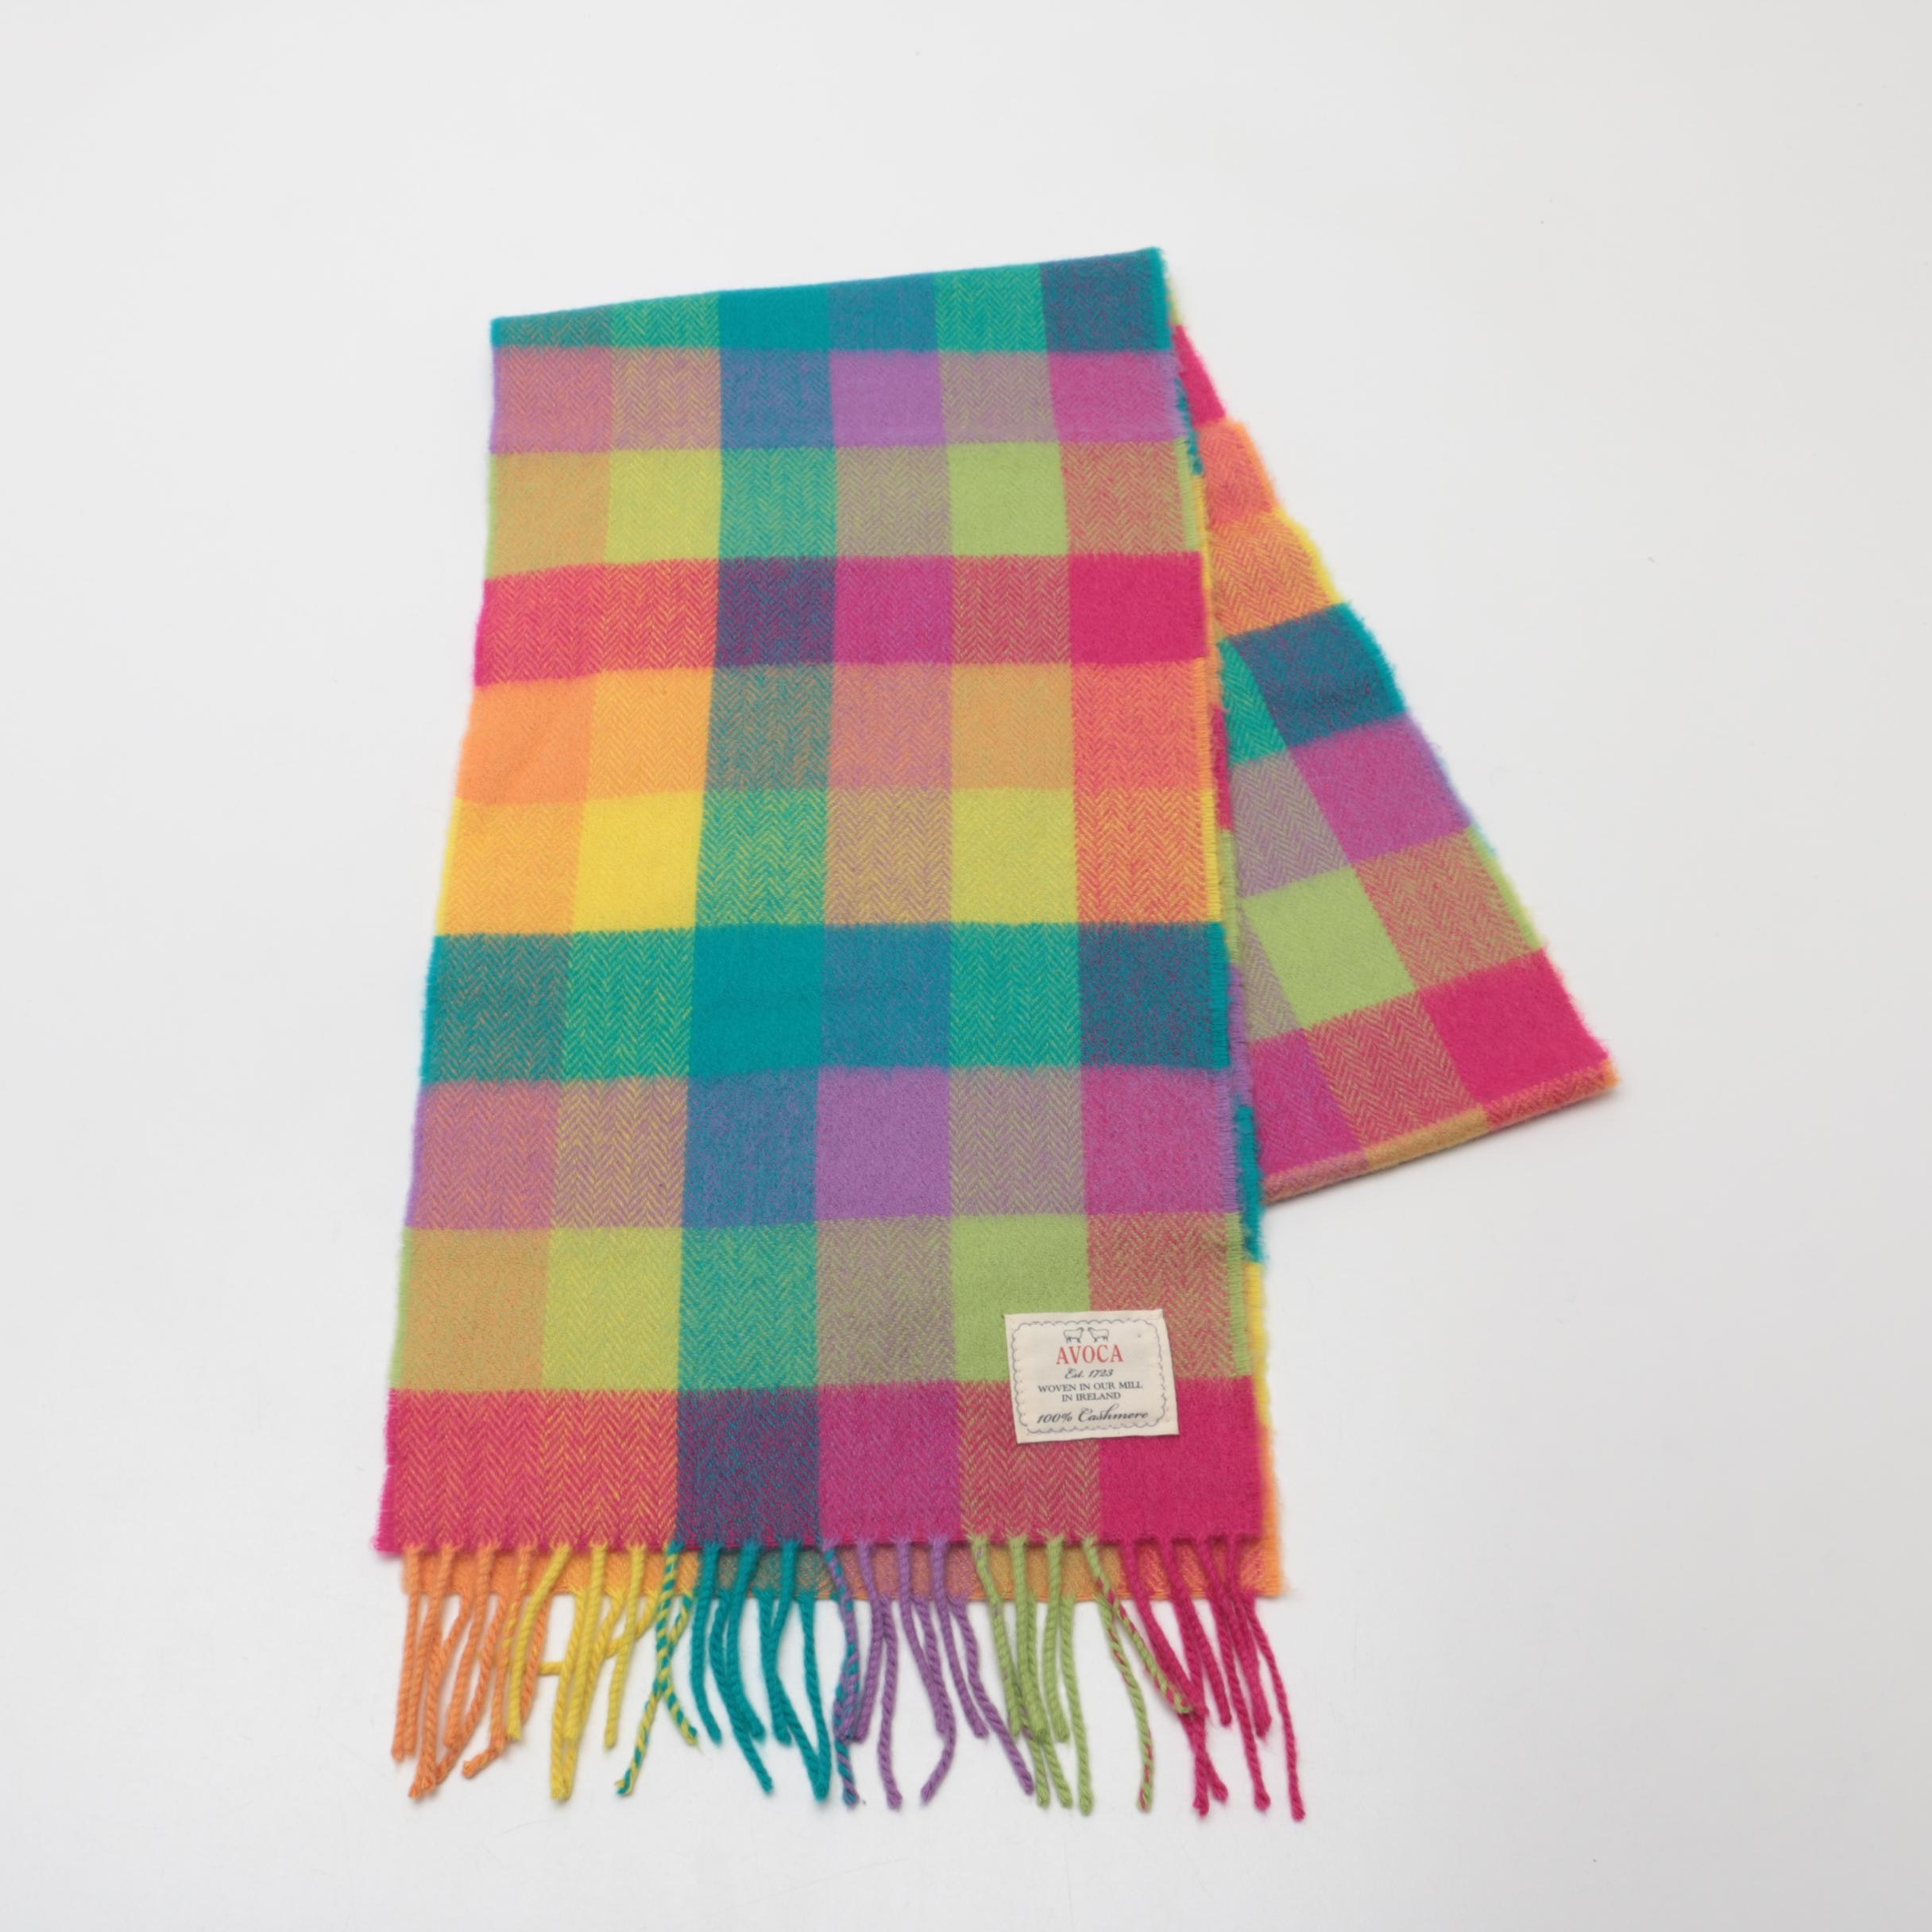 Avoca Plaid Cashmere Scarf Woven in Ireland